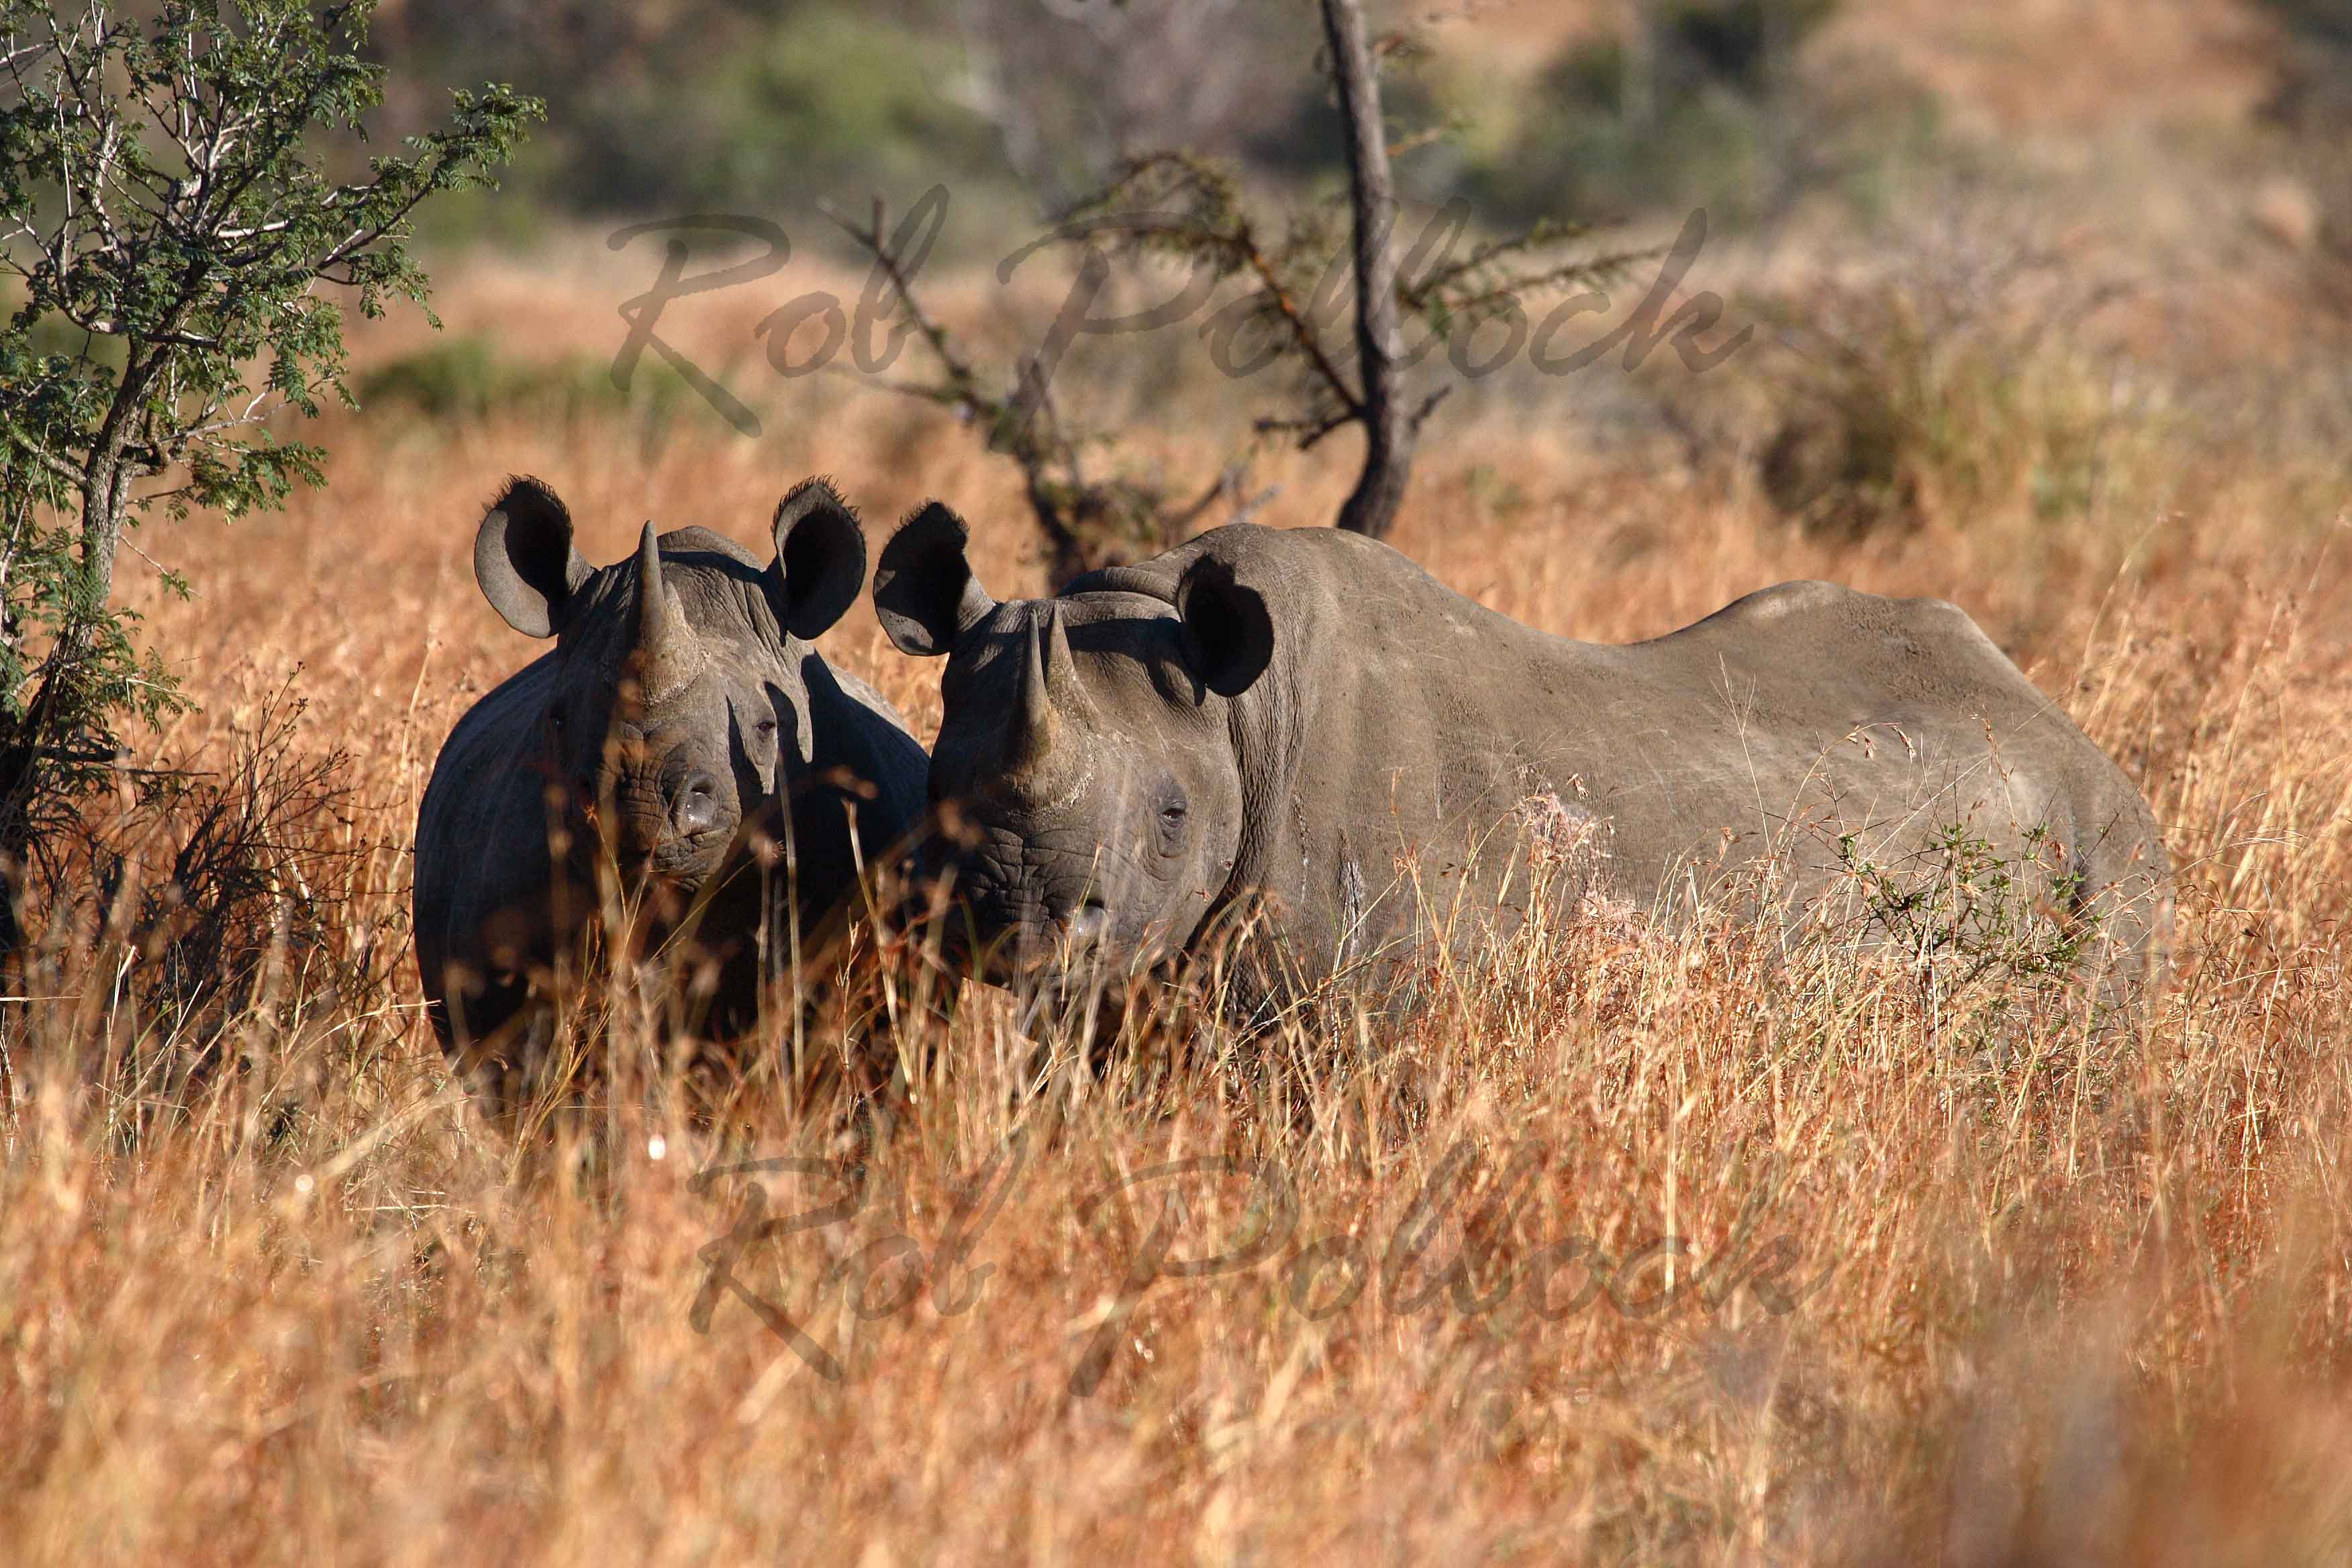 Black rhino at Kruger National Park